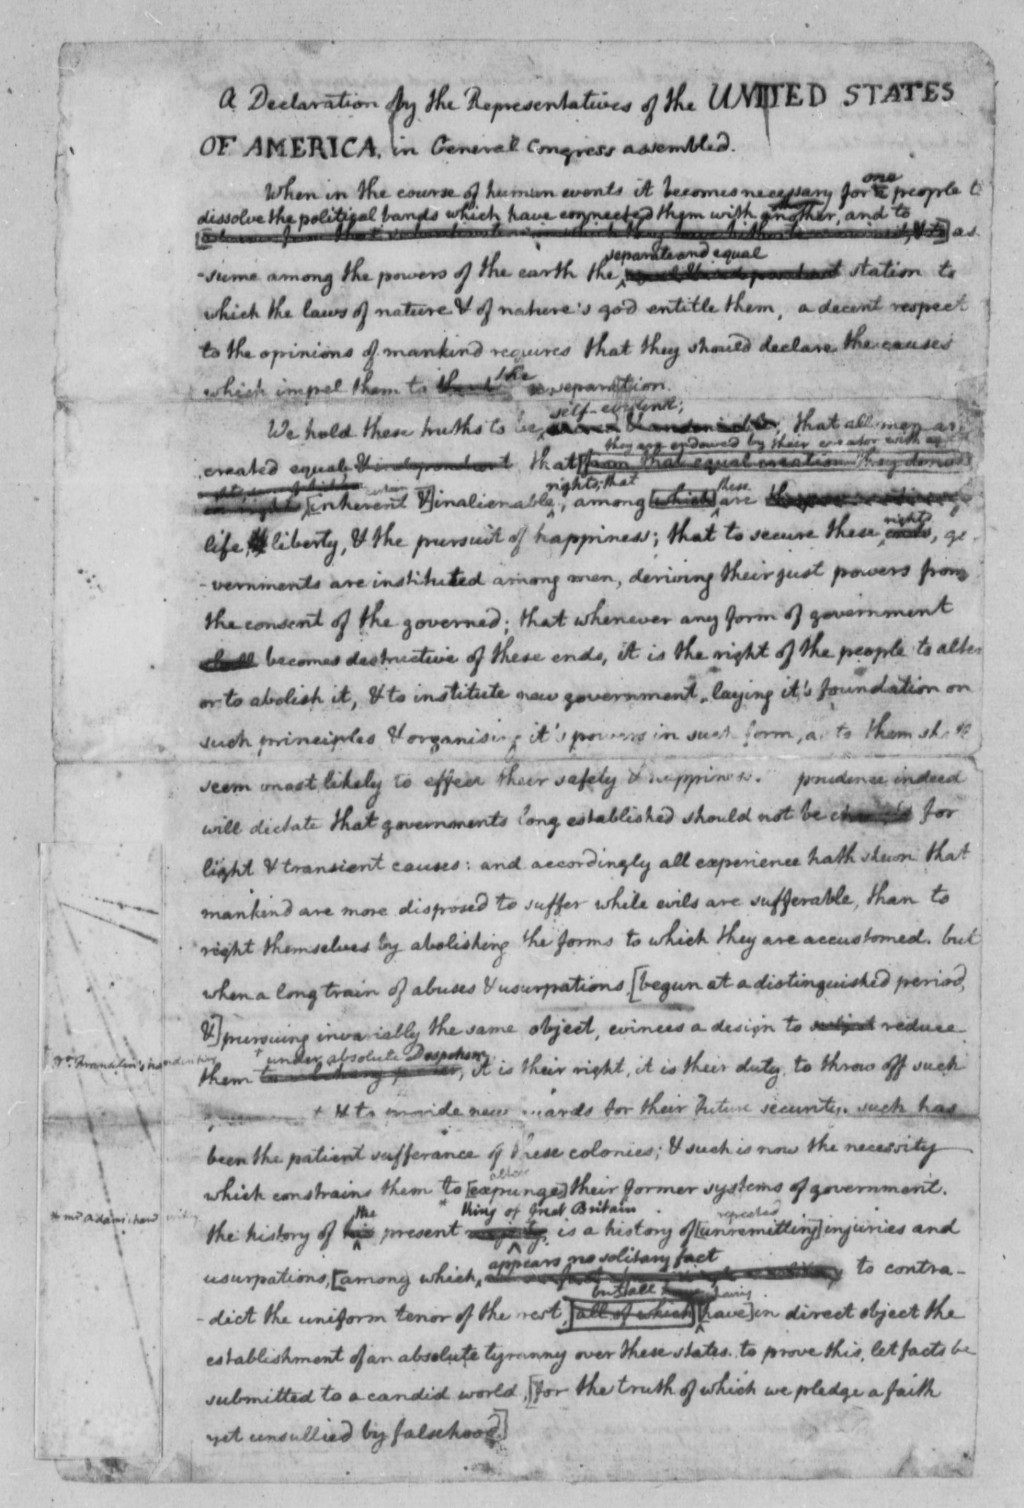 004 Thomas Jefferson Essay 3753820390 Slavery Magnificent On Education Questions Outline Large